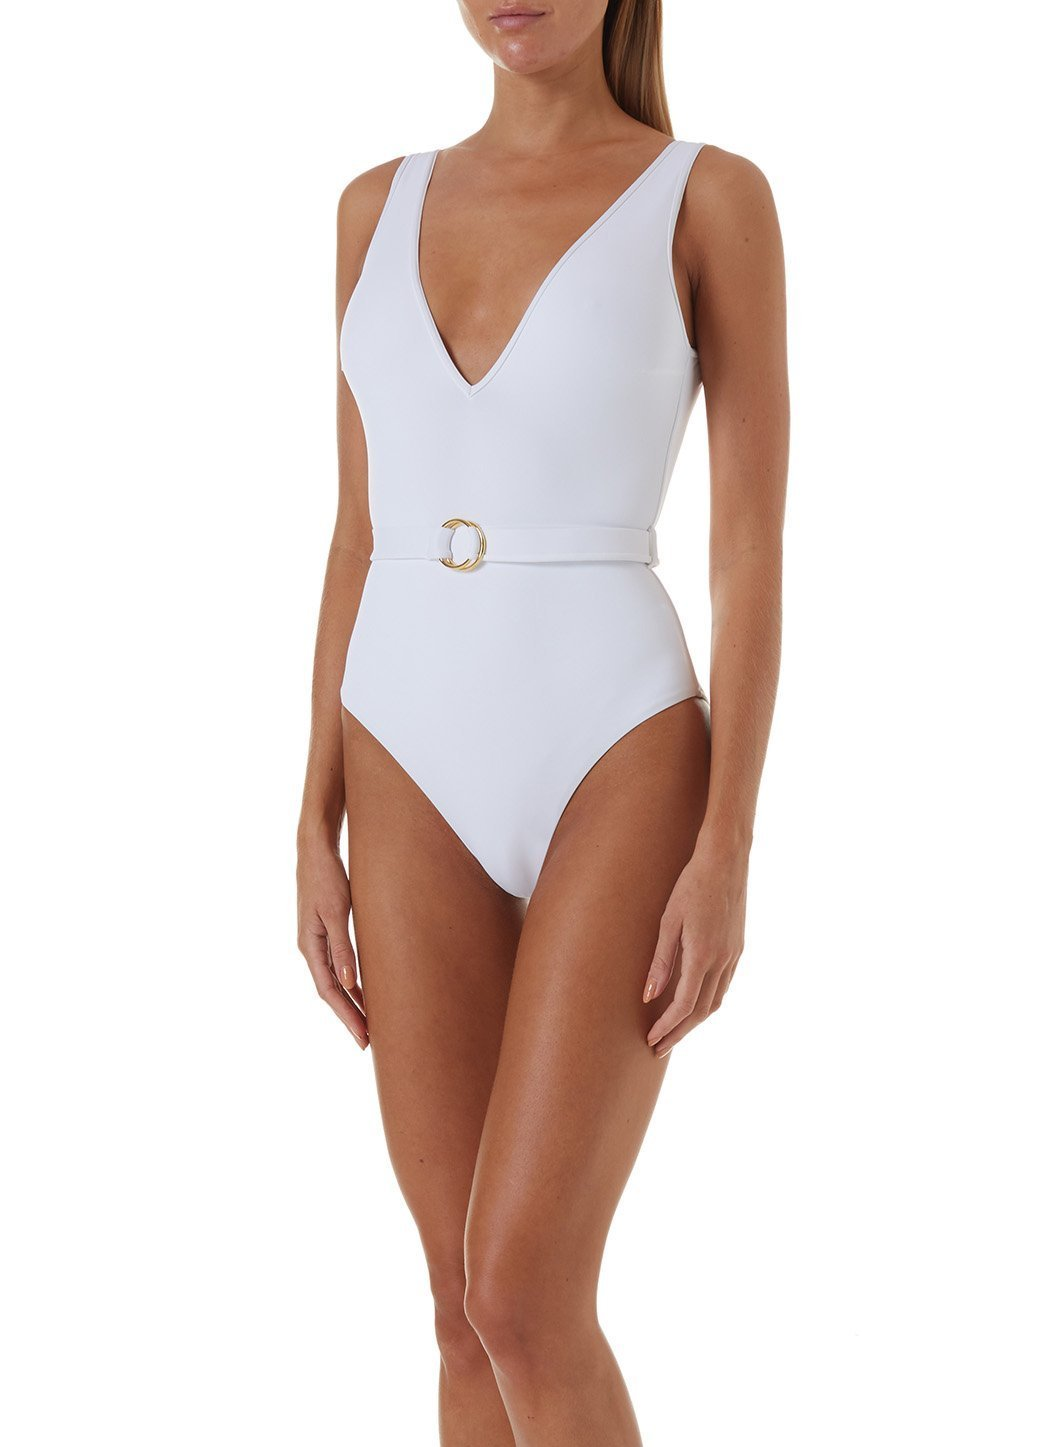 belize white swimsuit